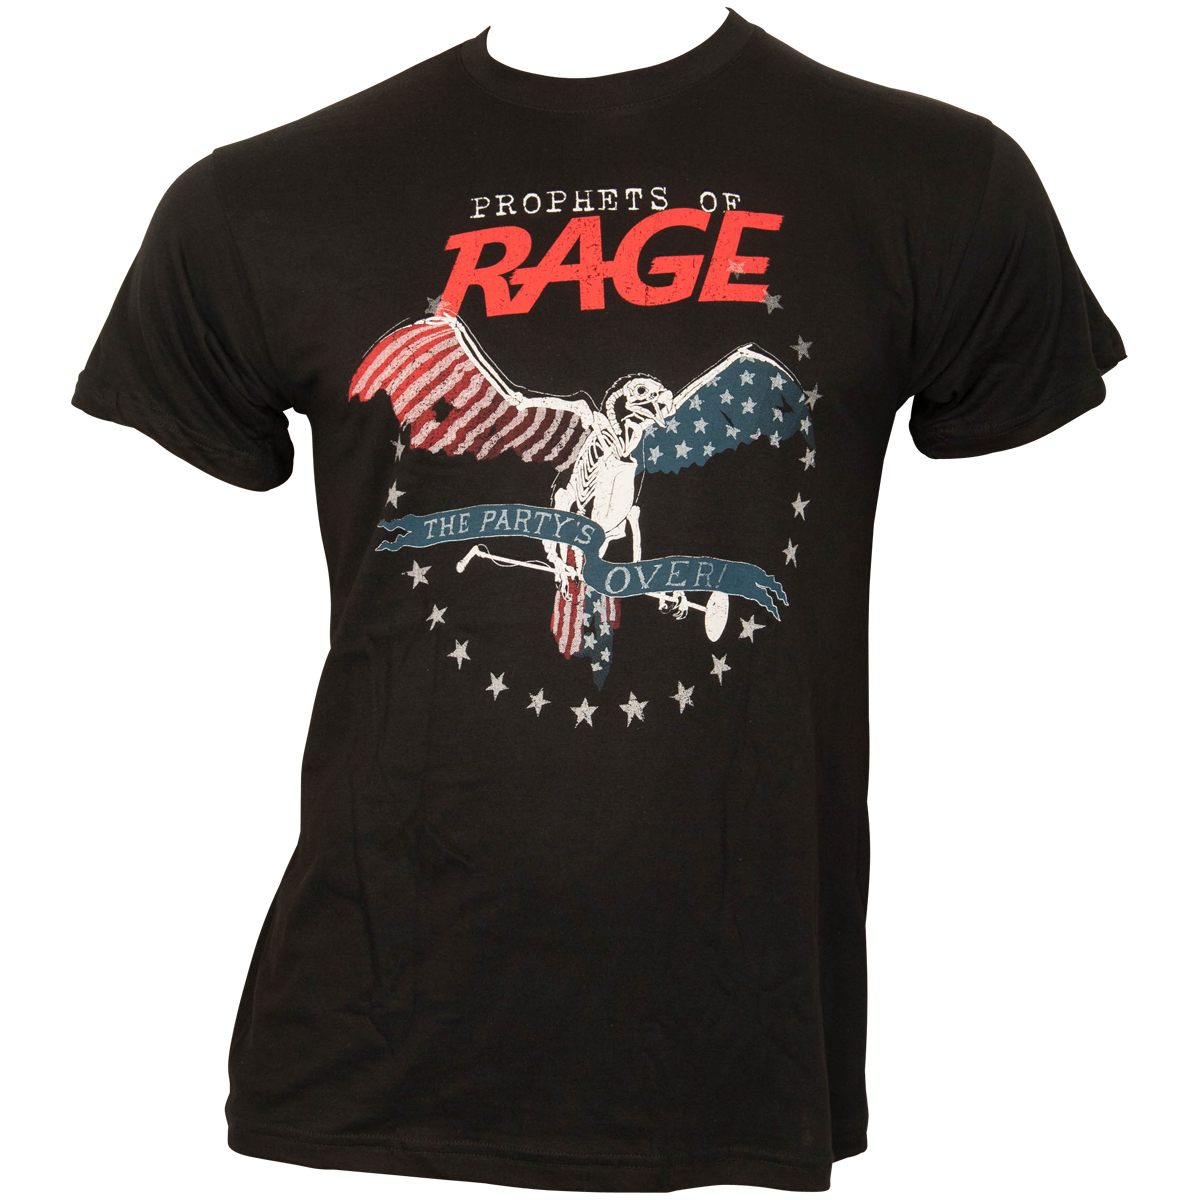 Prophets of Rage - T-Shirt The Party Is Over - schwarz